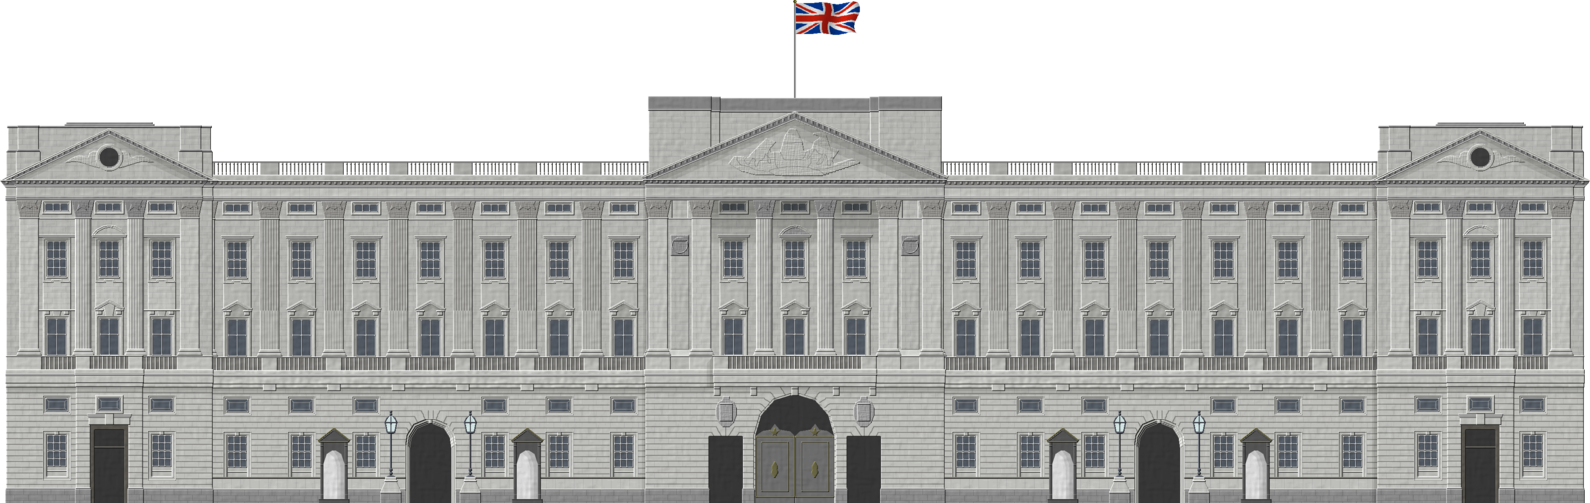 Palace clipart transparent. Buckingham by herbertrocha on